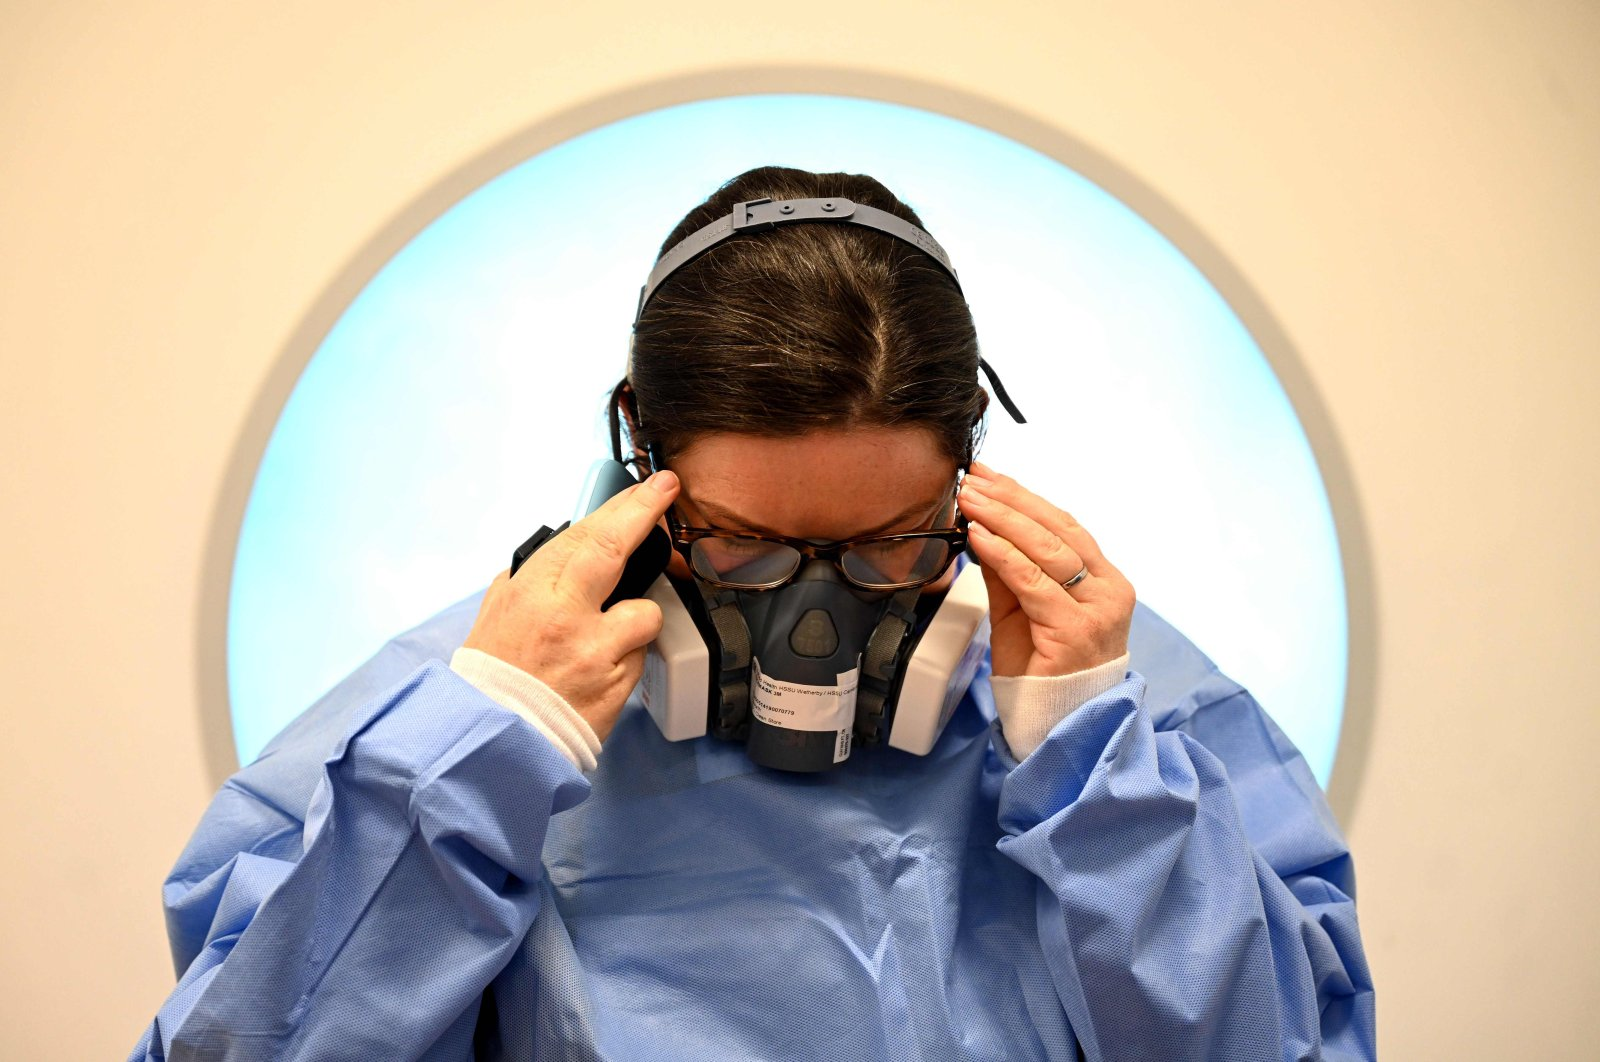 A member of the clinical staff adjusts her glasses as she dons personal protective equipment (PPE) including a mask and gown at the Intensive Care unit at Royal Papworth Hospital in Cambridge, on May 5, 2020. (AFP File Photo)